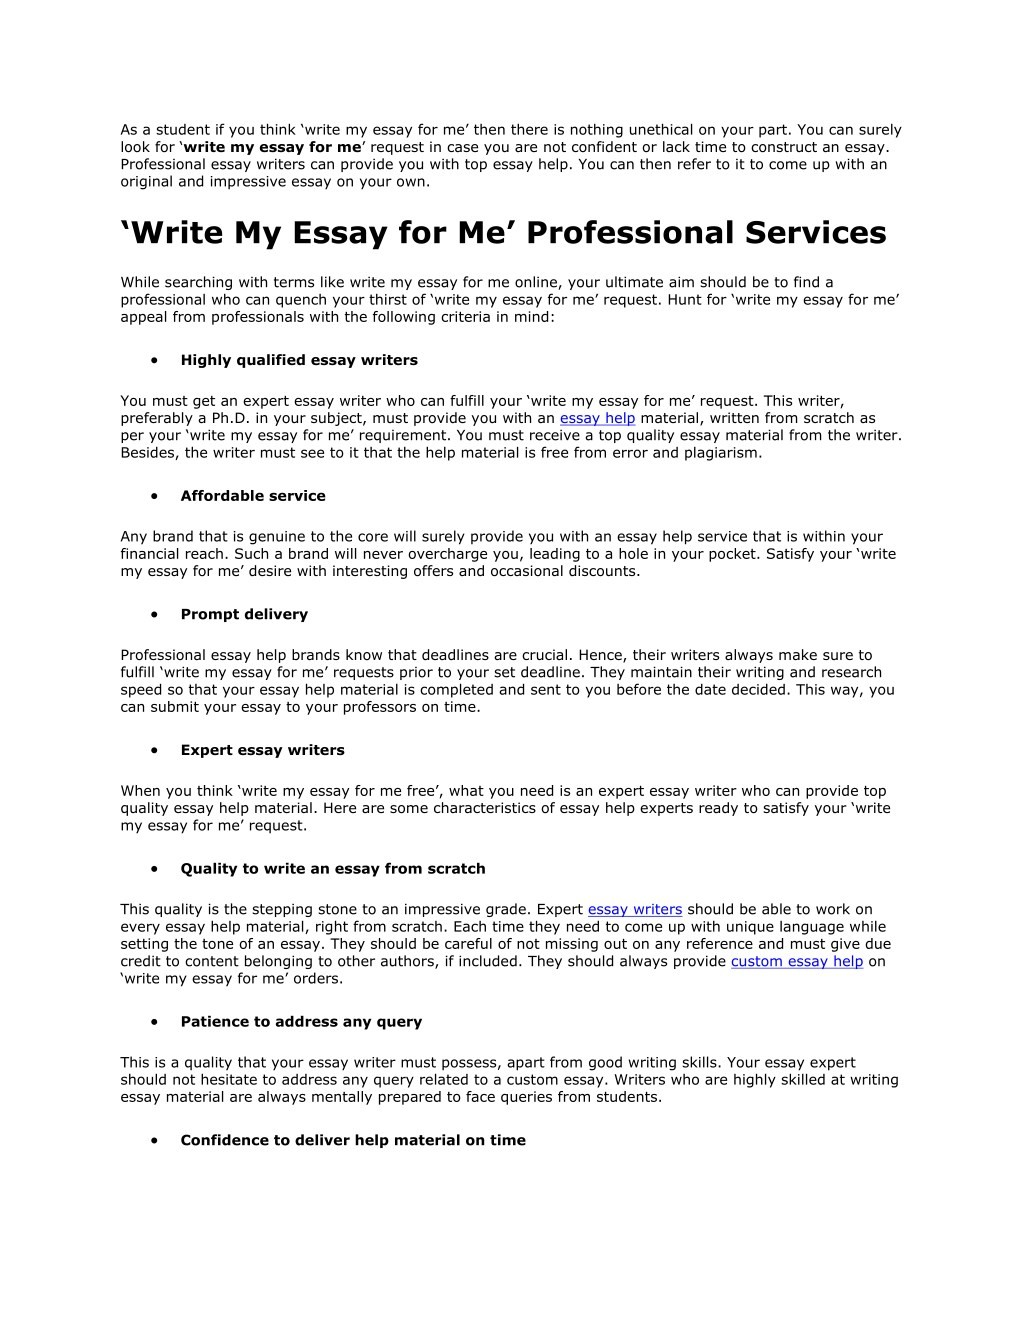 017 Write My Essay For Me Example As Student If You Think Surprising Reviews Canada Custom Cheap Large